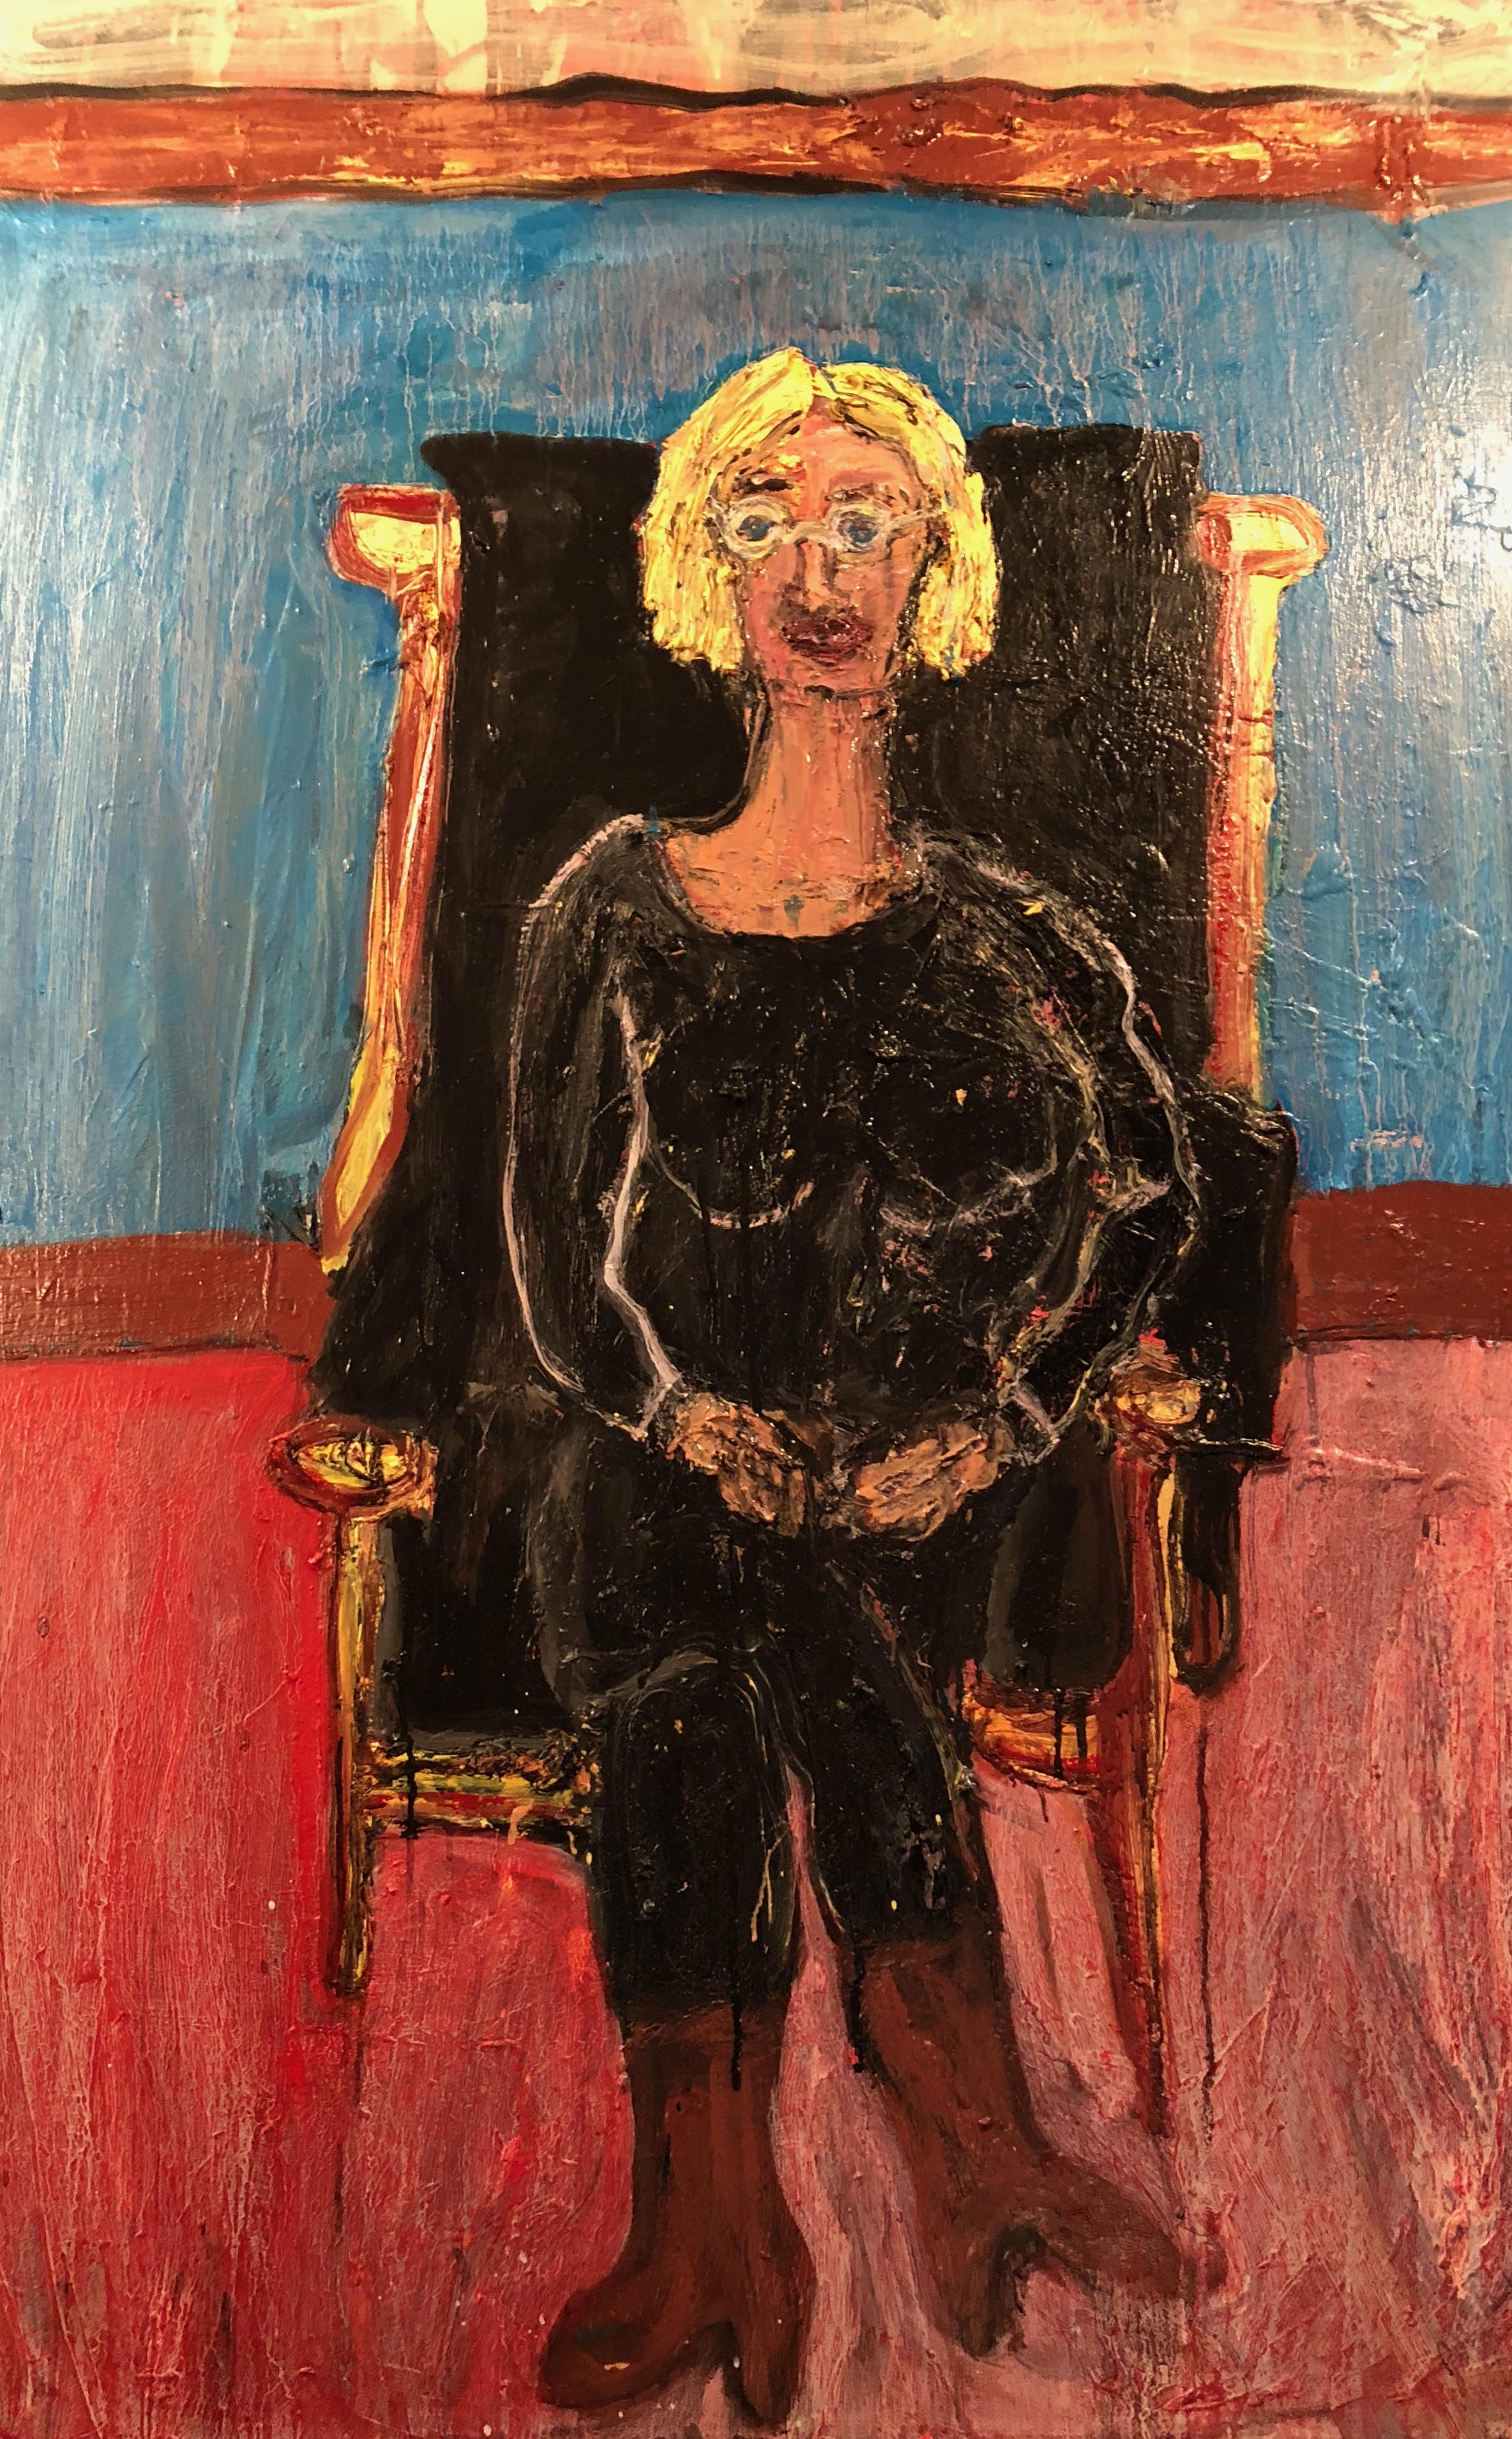 """Singer Songwriter, Bergen O'Malley, Sitting in My Leather Chair - Oil on canvas60"""" x 48""""2018"""